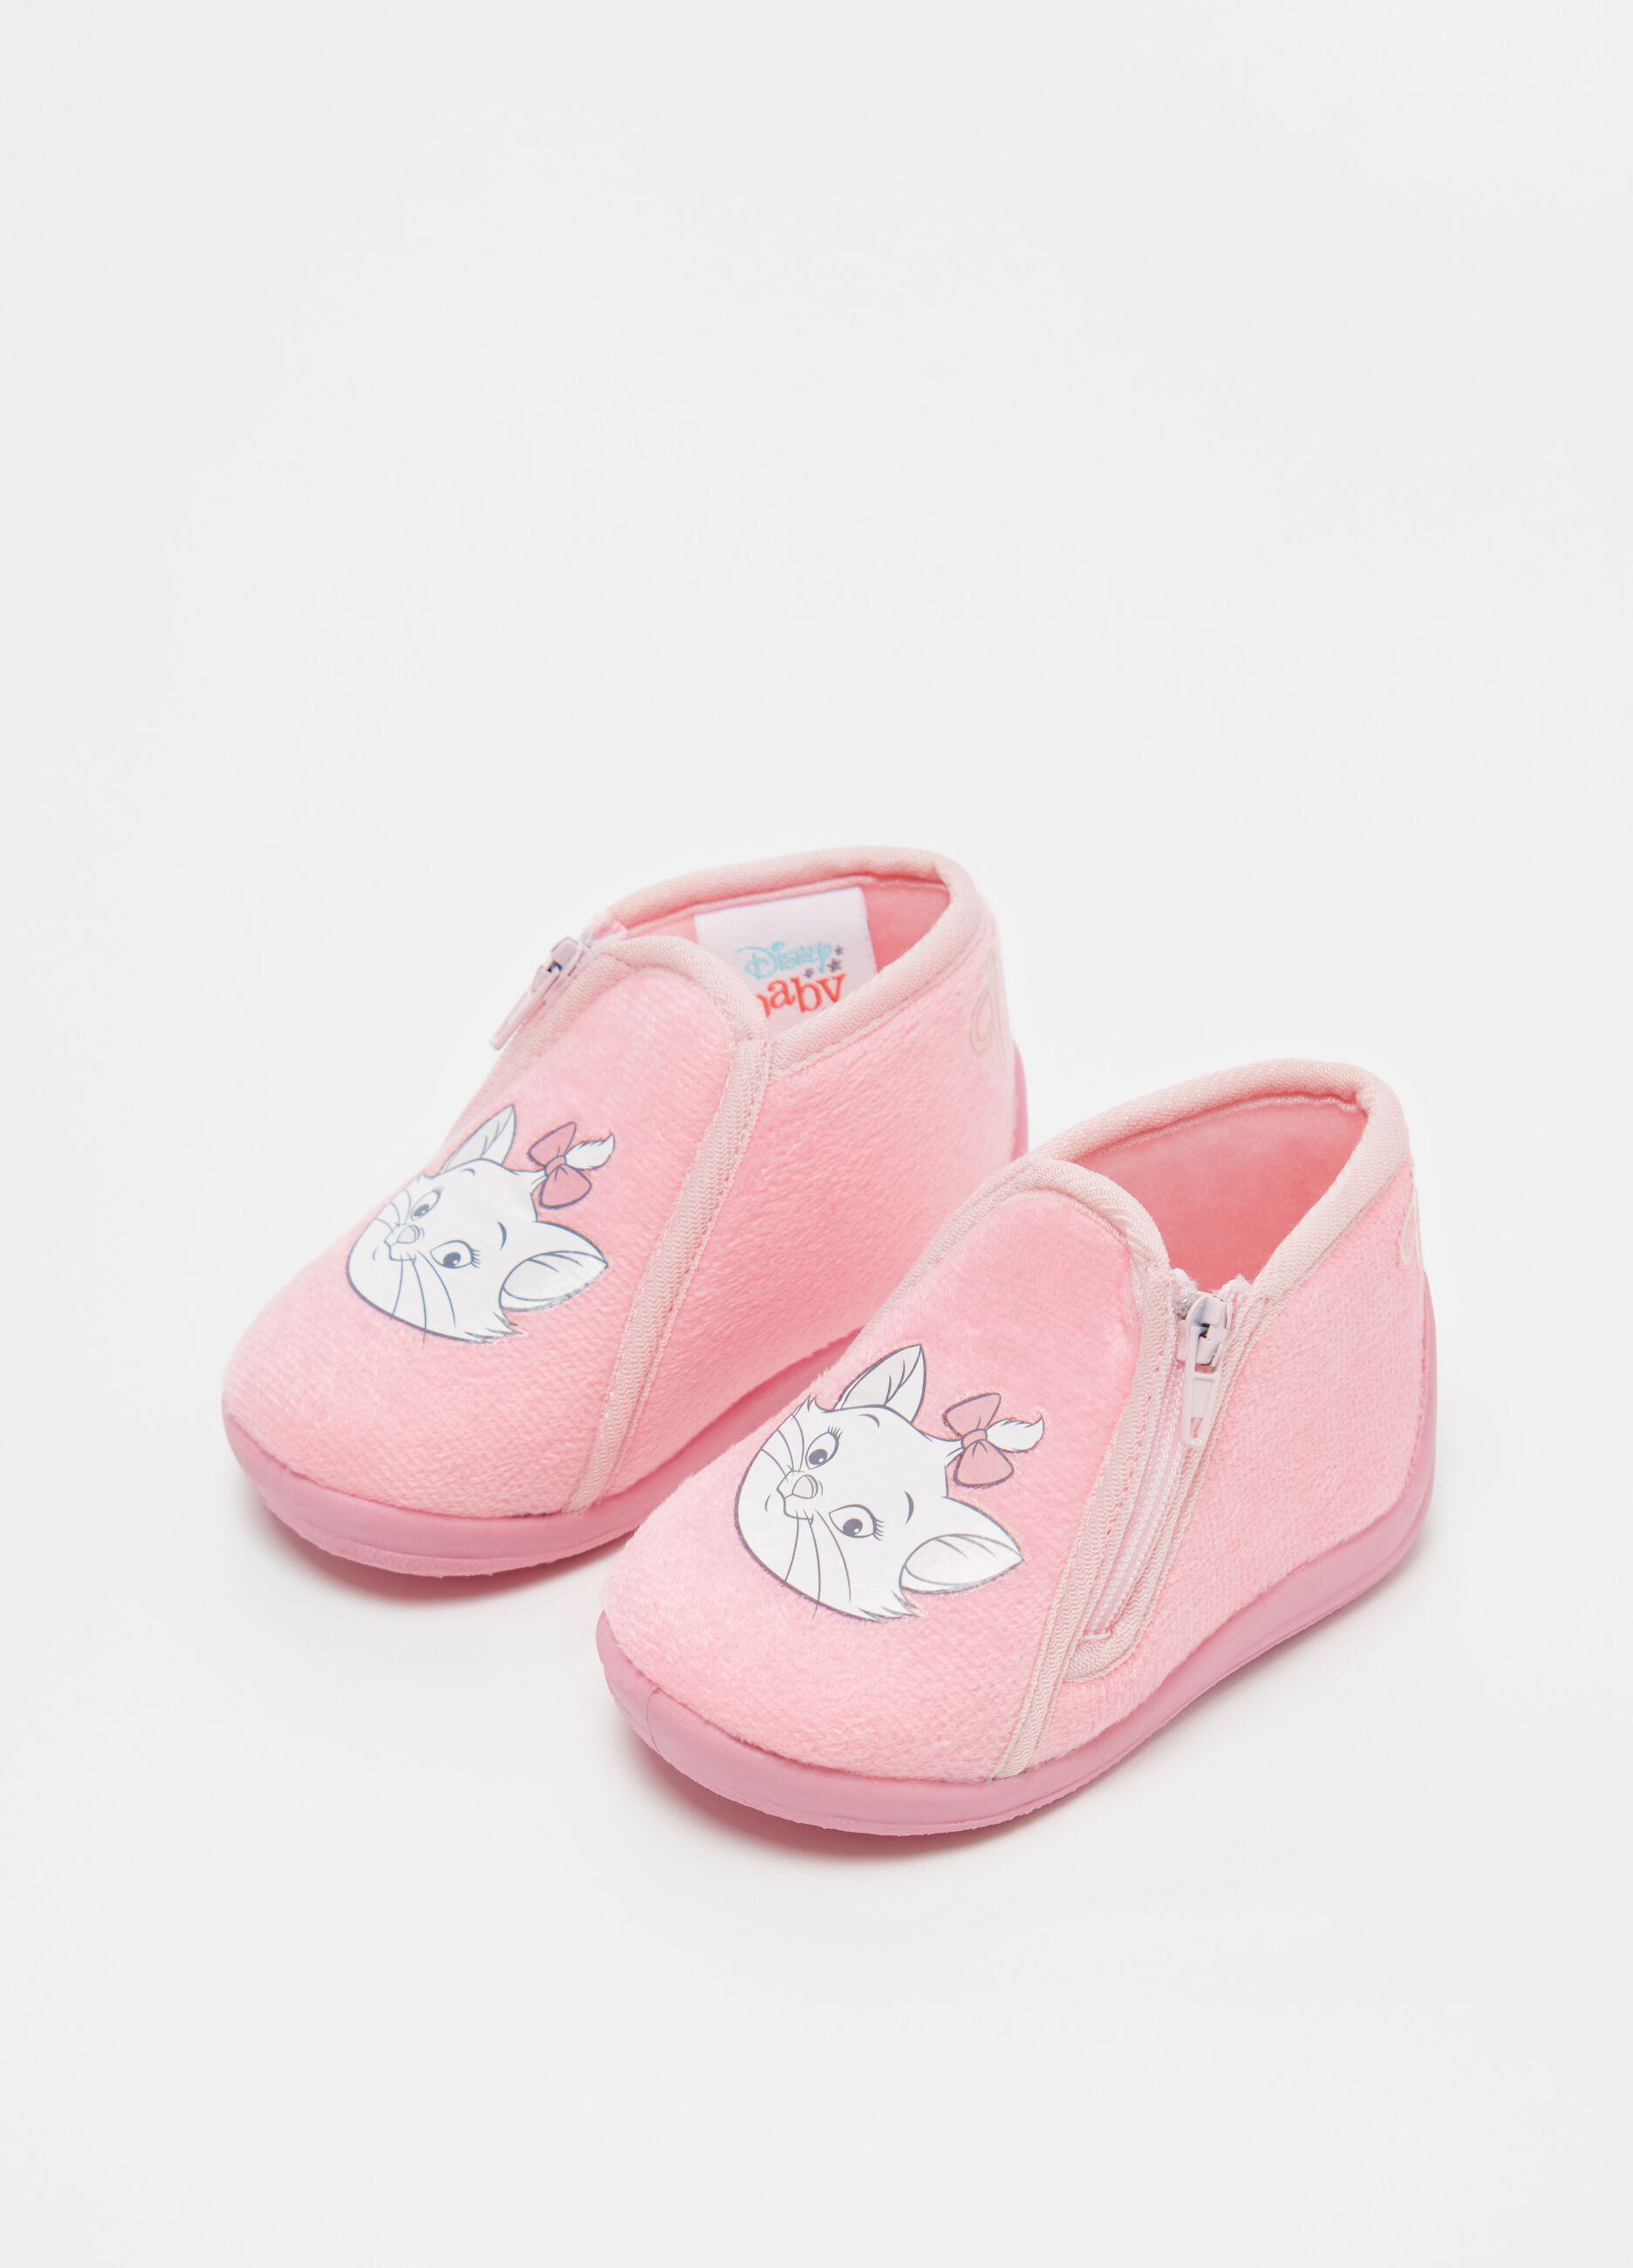 Baby Girls' Shoes Online, New